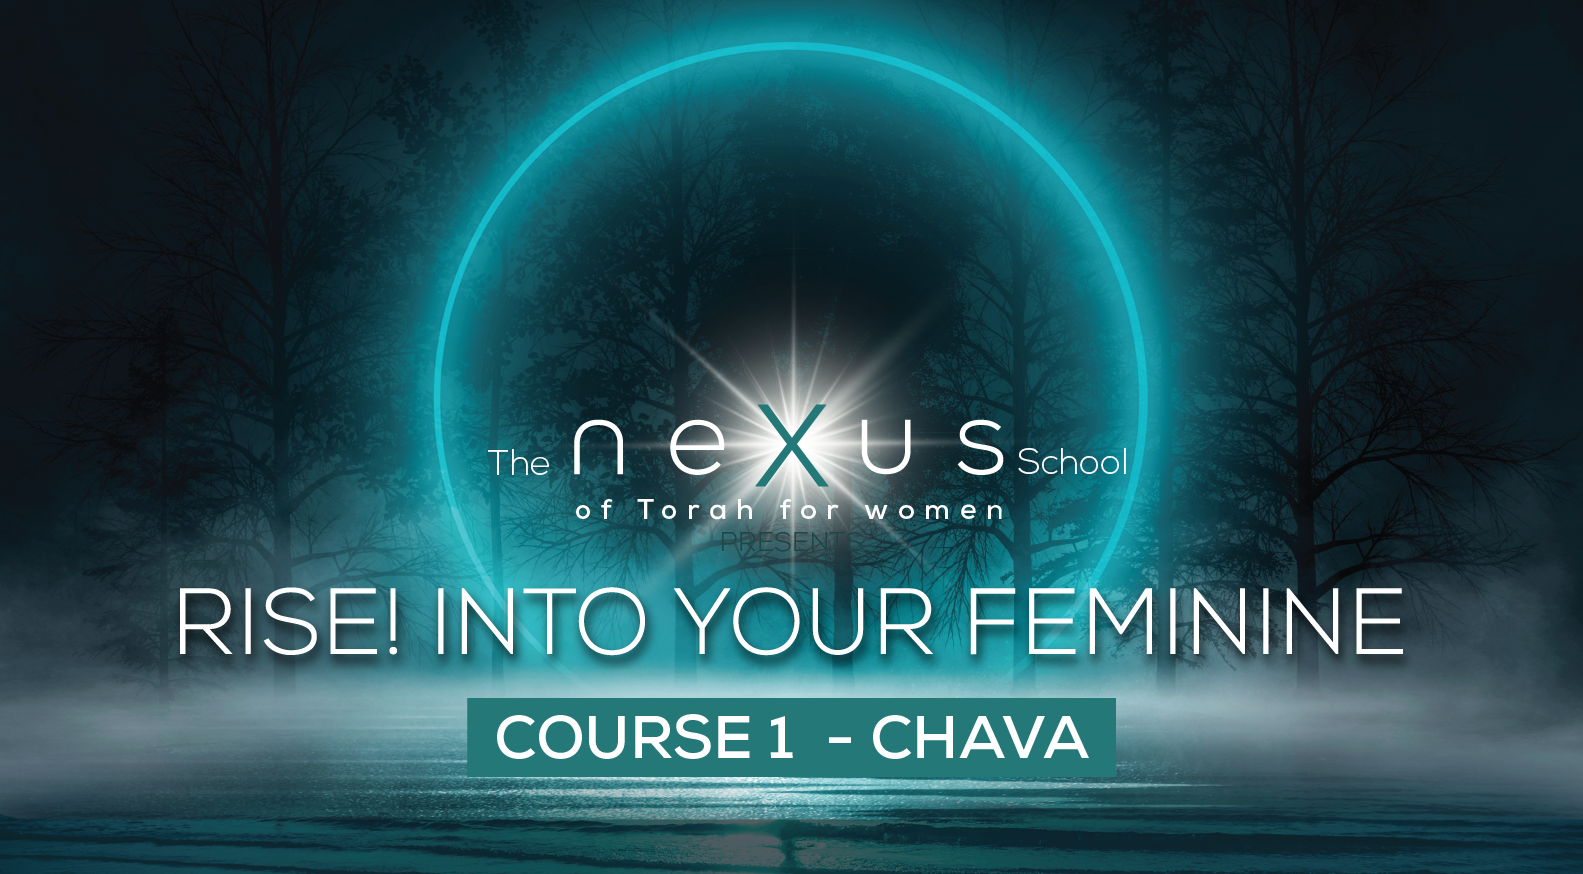 FEATURE COURSE: Rise! Into Your Feminine through Chava -2020